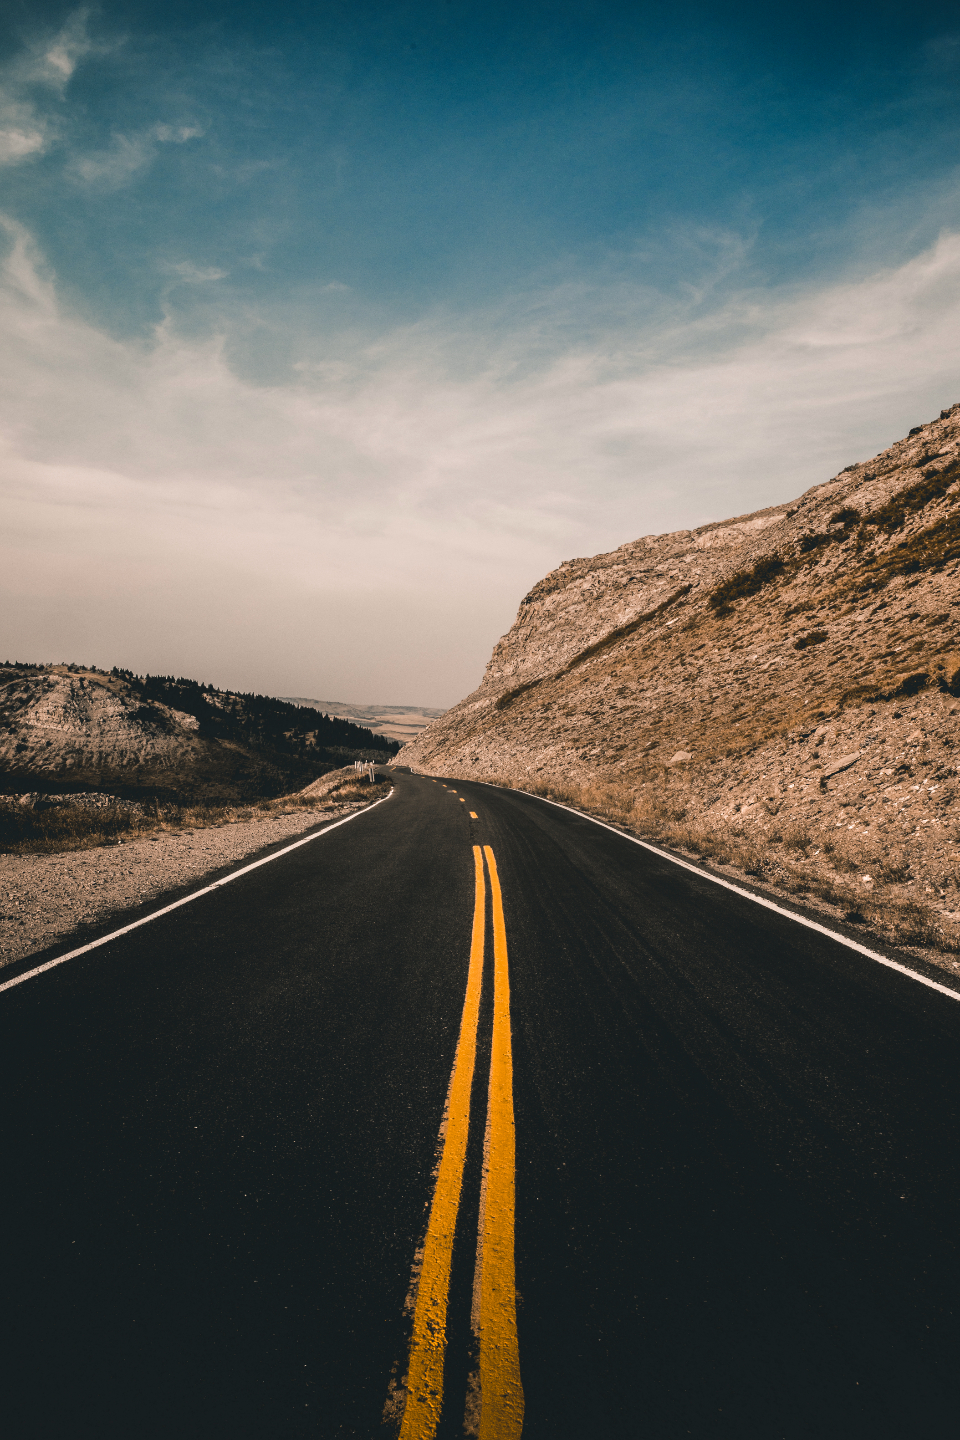 travel road country western west movement travelling traveller driving drive highway pavement desert dirt landscape nature outdoors mountains mountain blue sky clouds montana